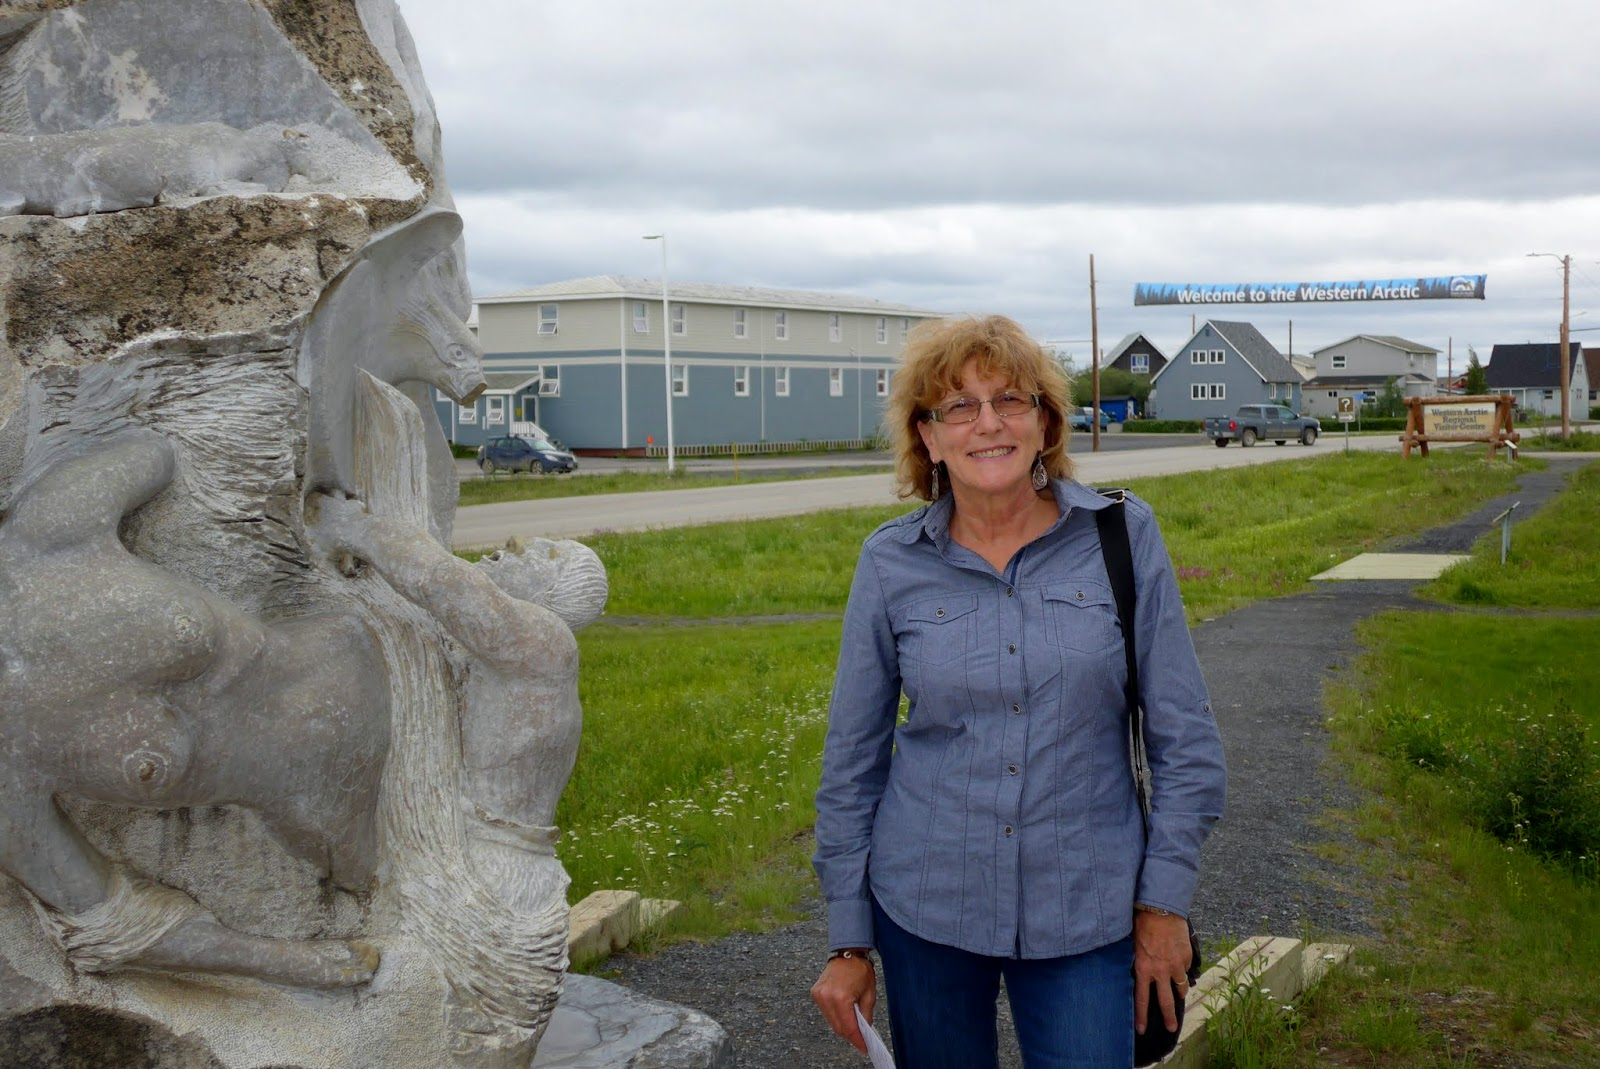 Liz outside info center in Inuvik.